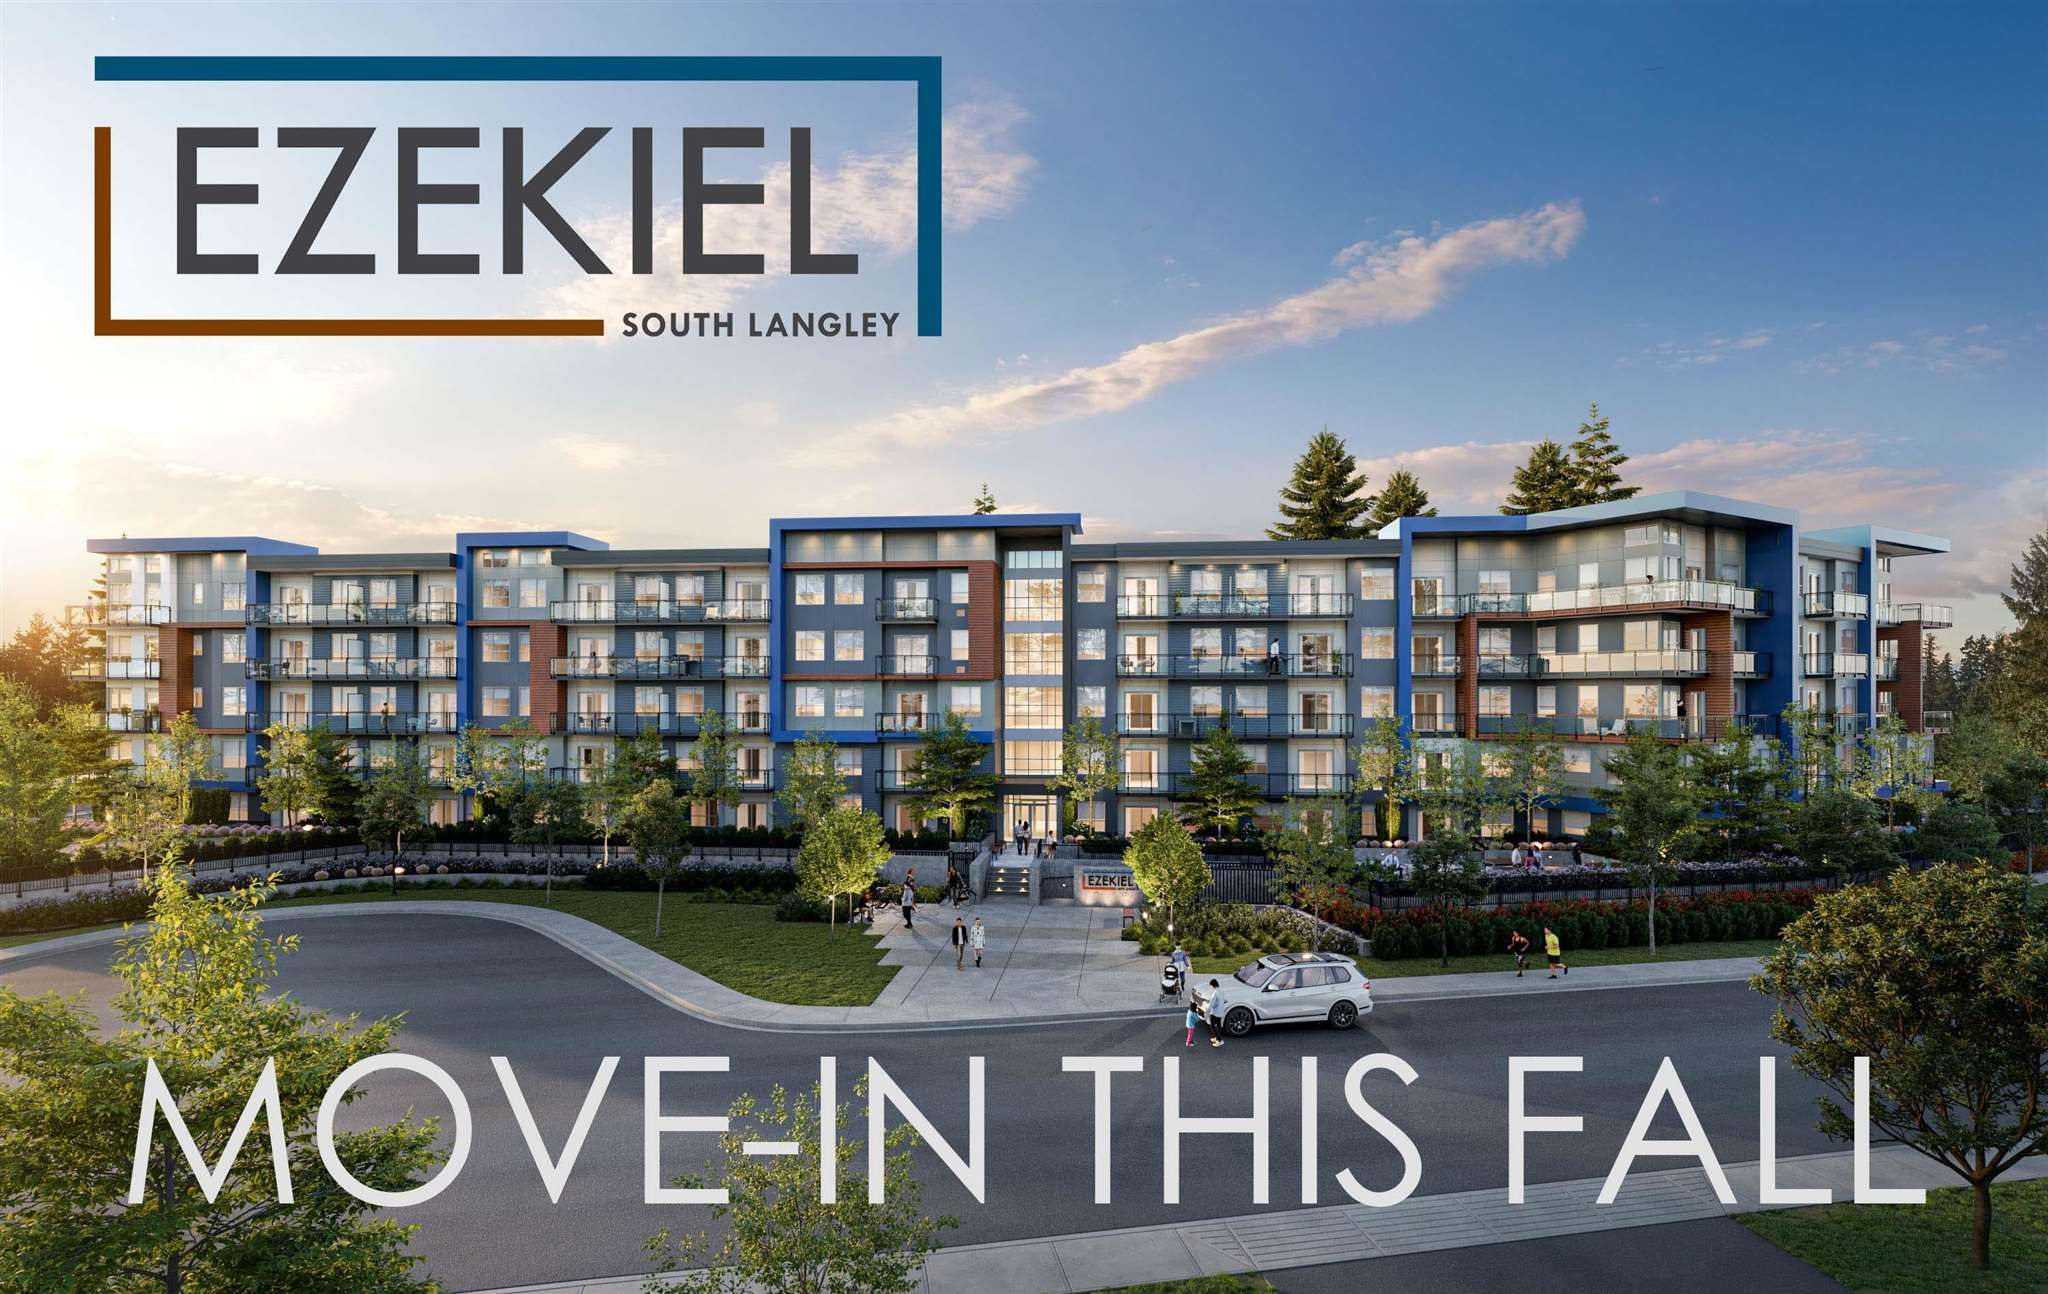 """Main Photo: 106 5486 199A Street in Langley: Langley City Condo for sale in """"Ezekiel"""" : MLS®# R2611012"""